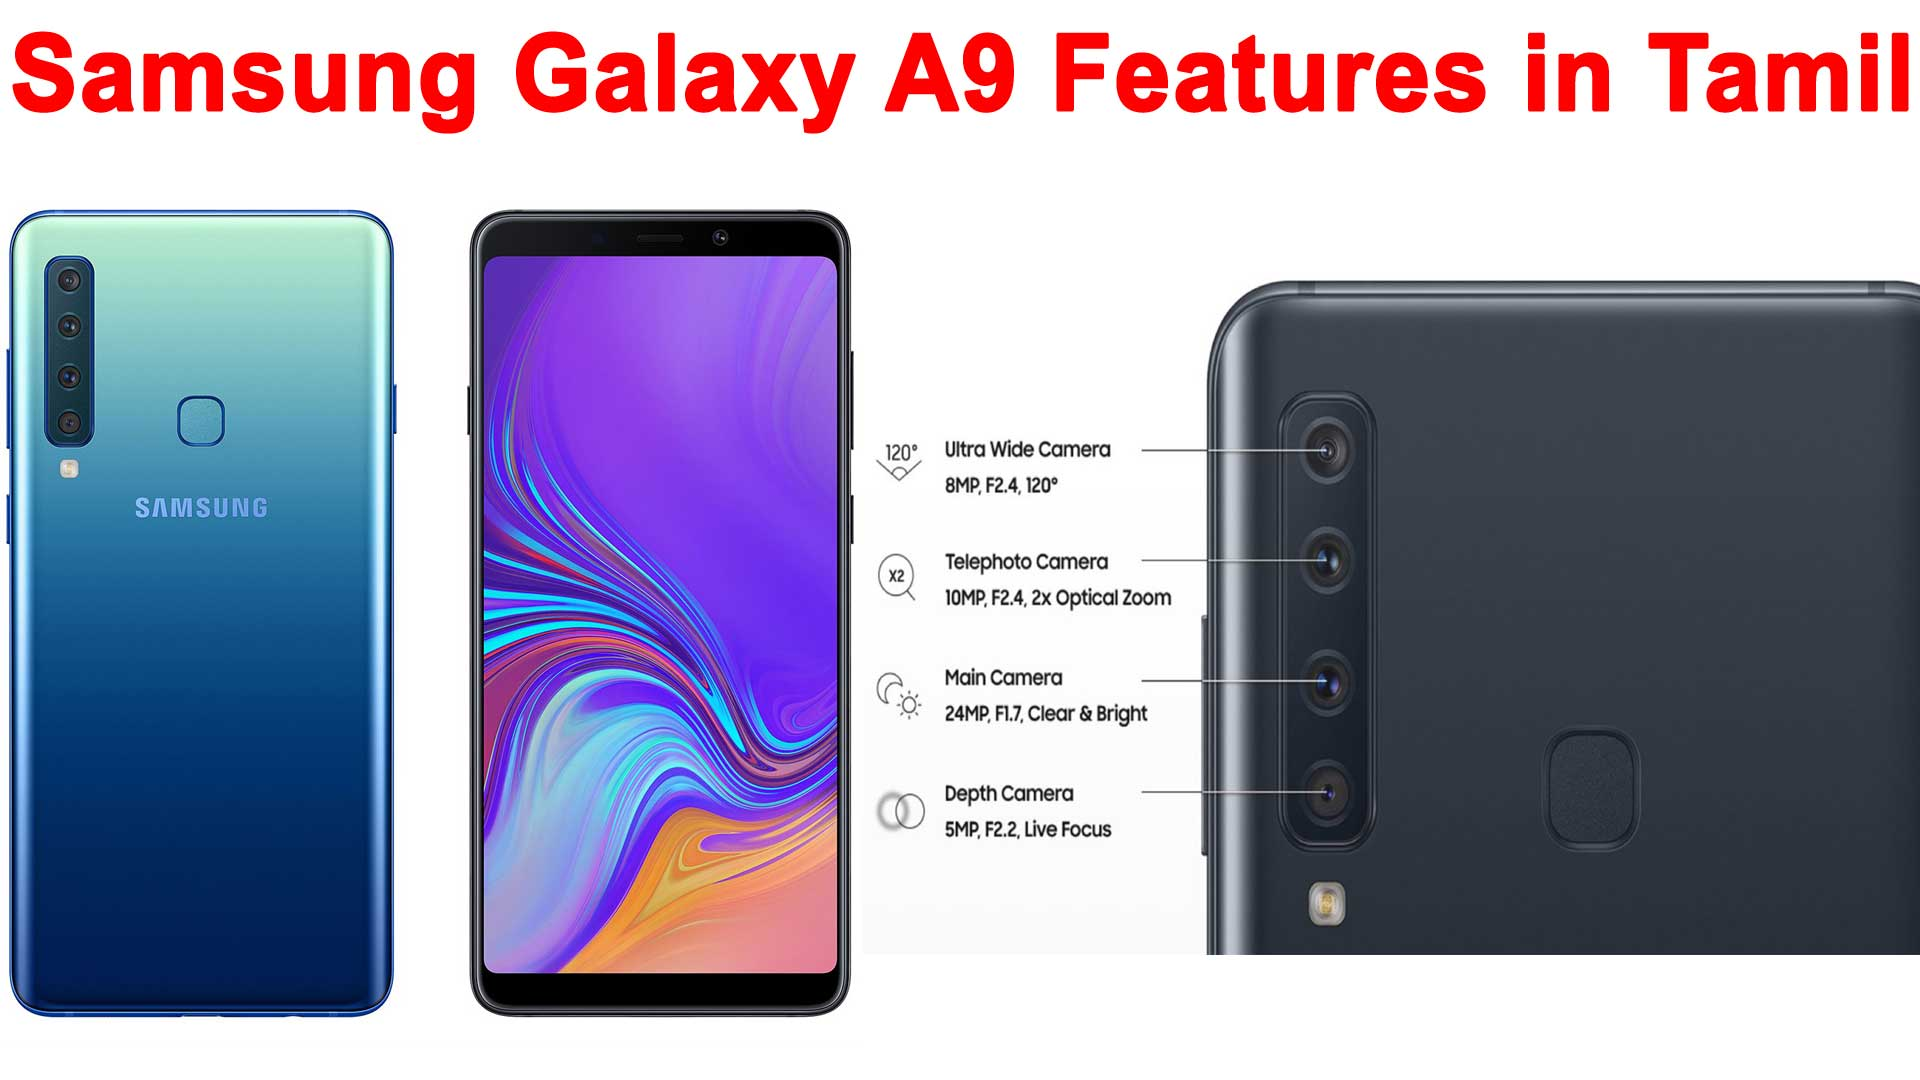 Samsung Galaxy A9 (2018) - Price, Specifications & Features in Tamil | Samsung Galaxy A9 Review